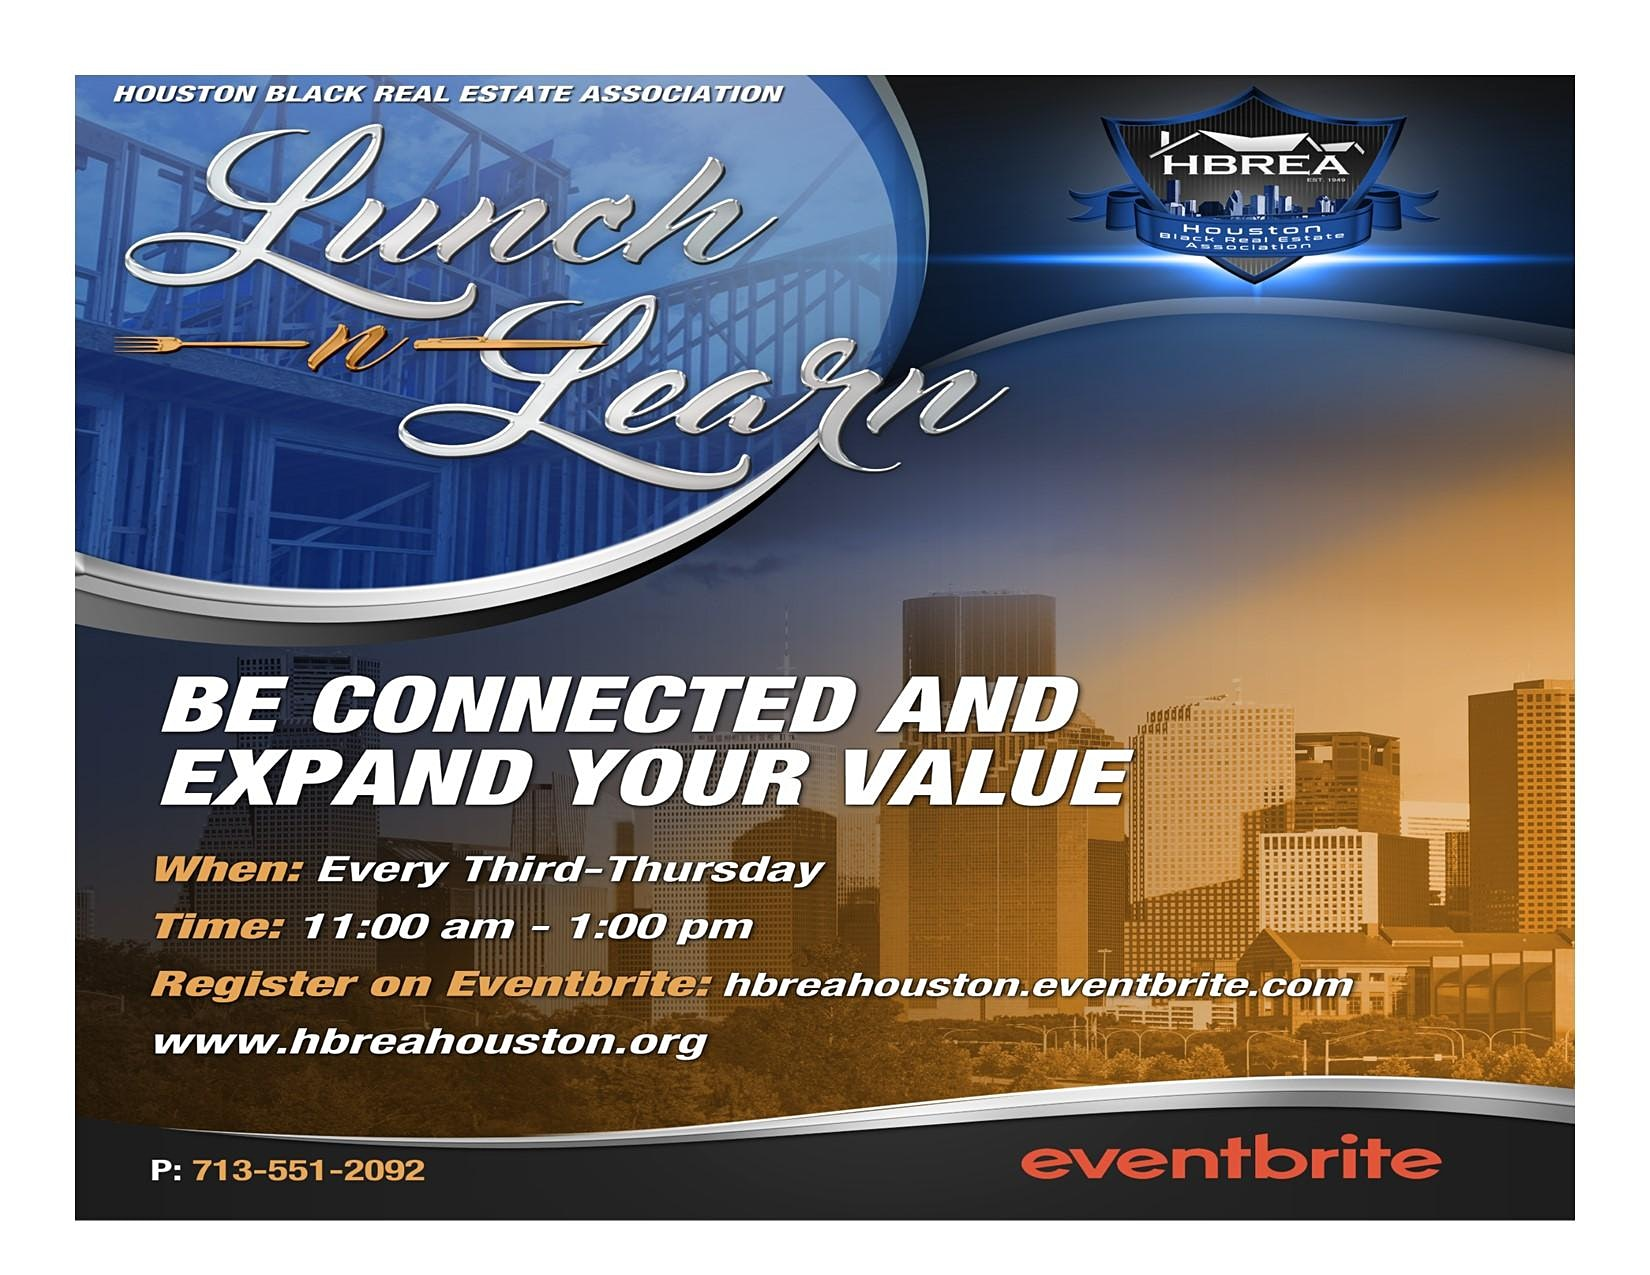 Lunch-n-Learn - HBREA - Be Connected and Expand Your Value